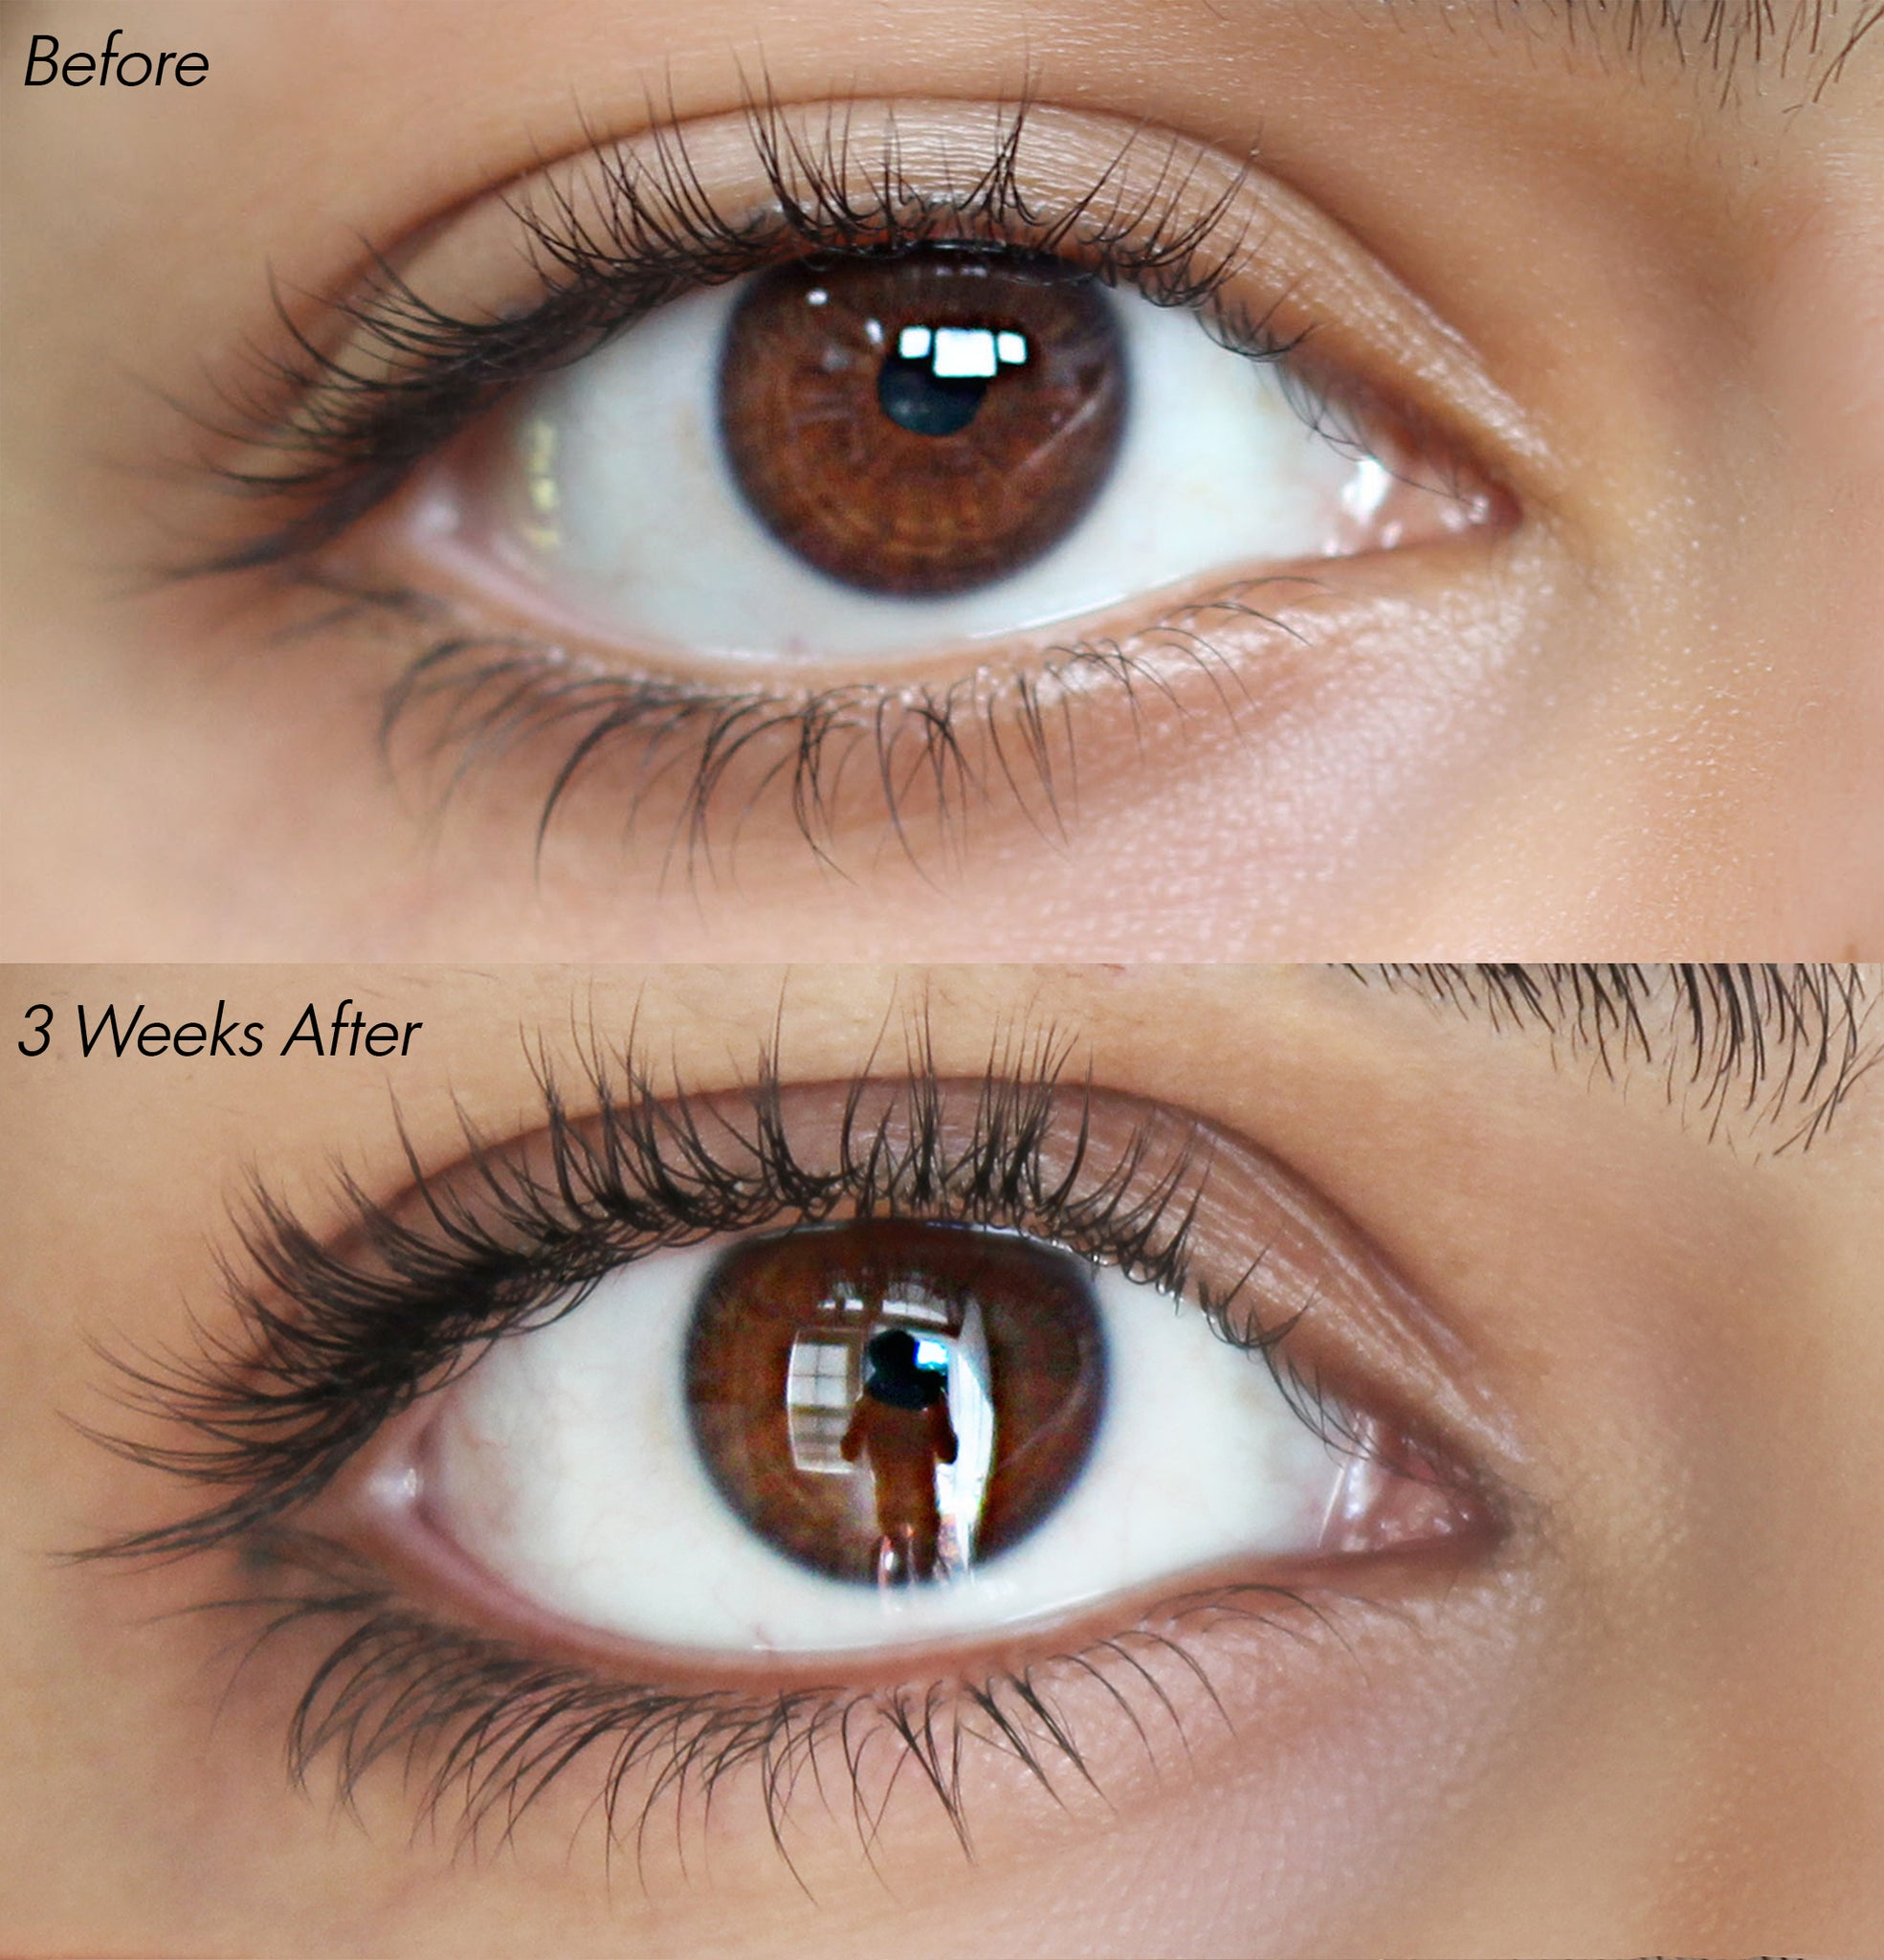 How to improve the growth of eyelashes and eyebrows: folk remedies